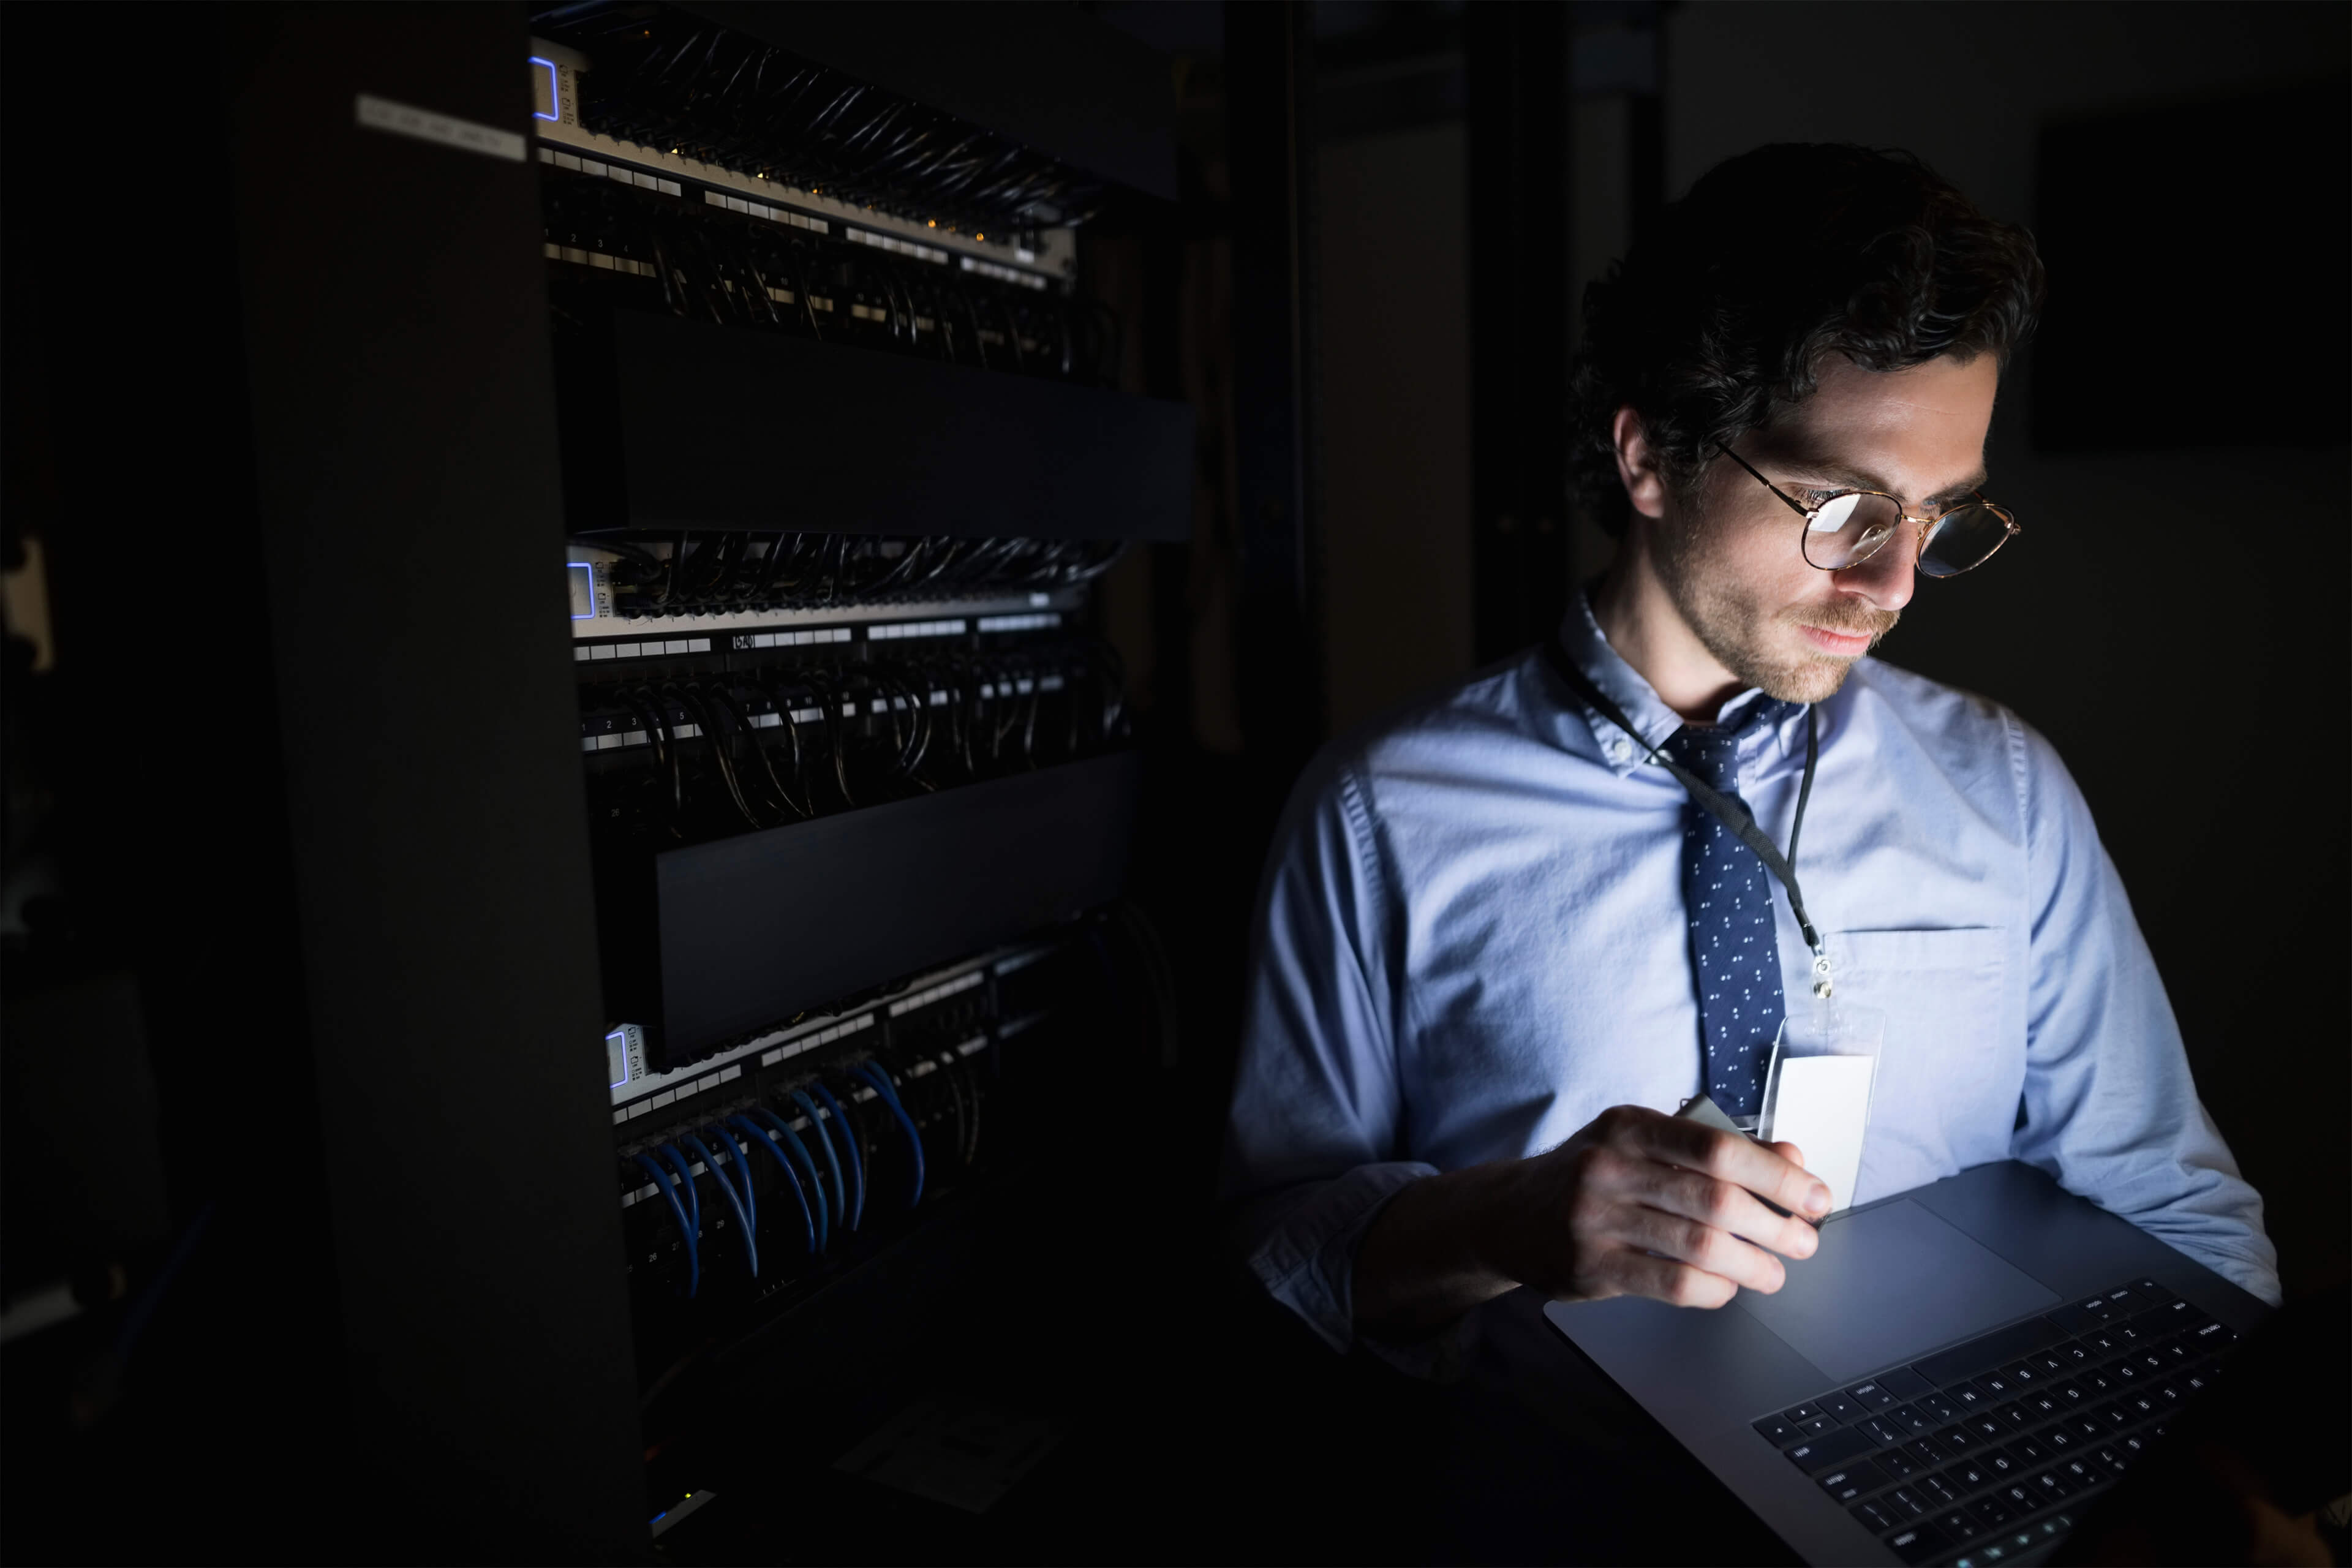 man checking tablet dark server room